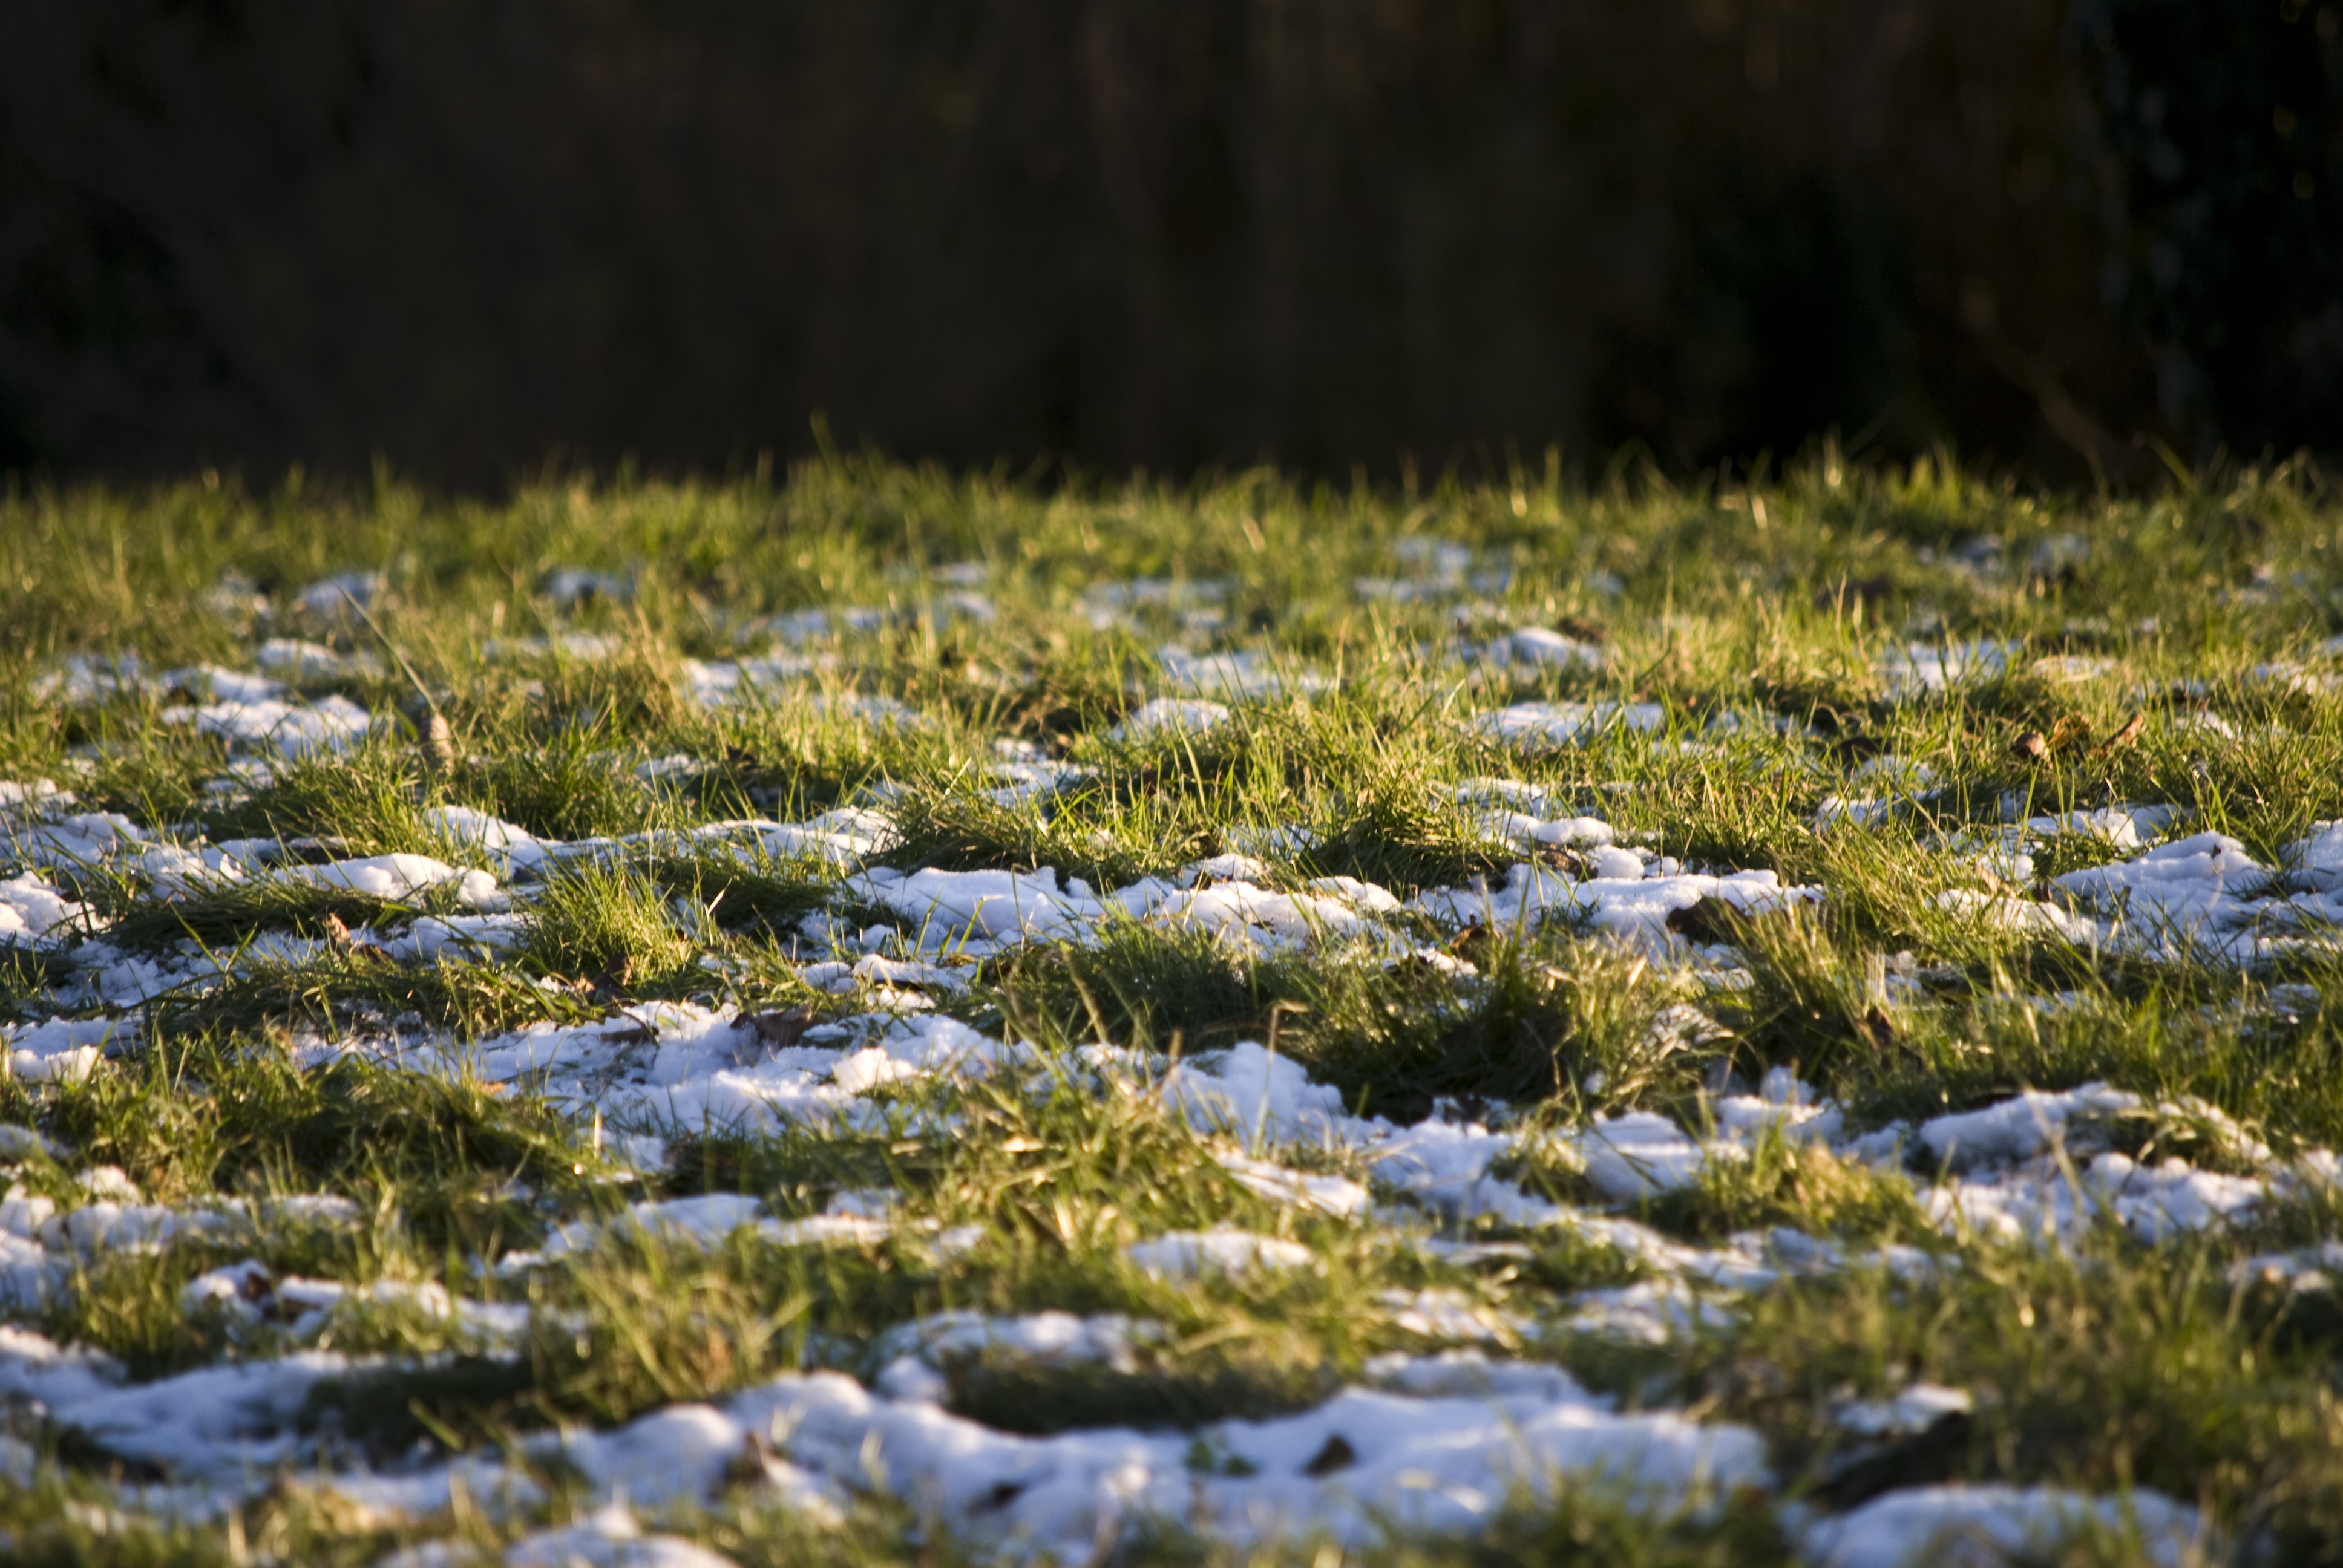 snow on the grass